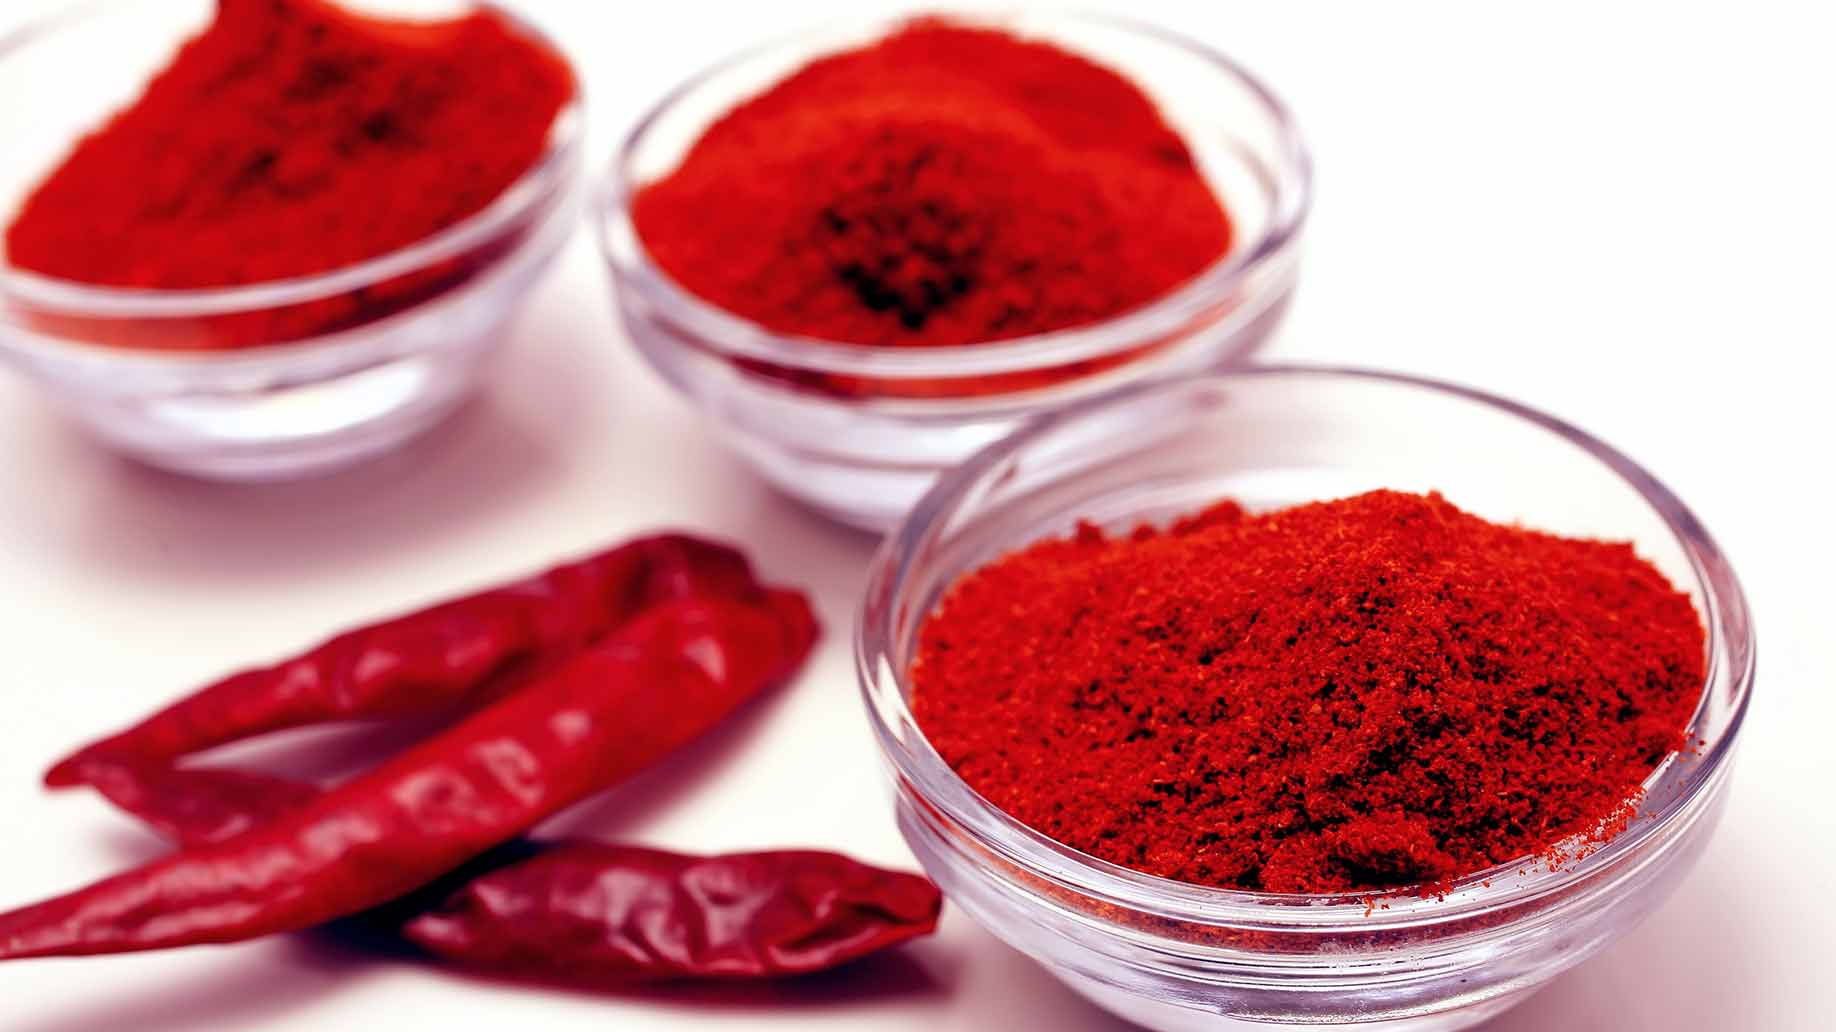 cayenne spicy red peppers dried powder